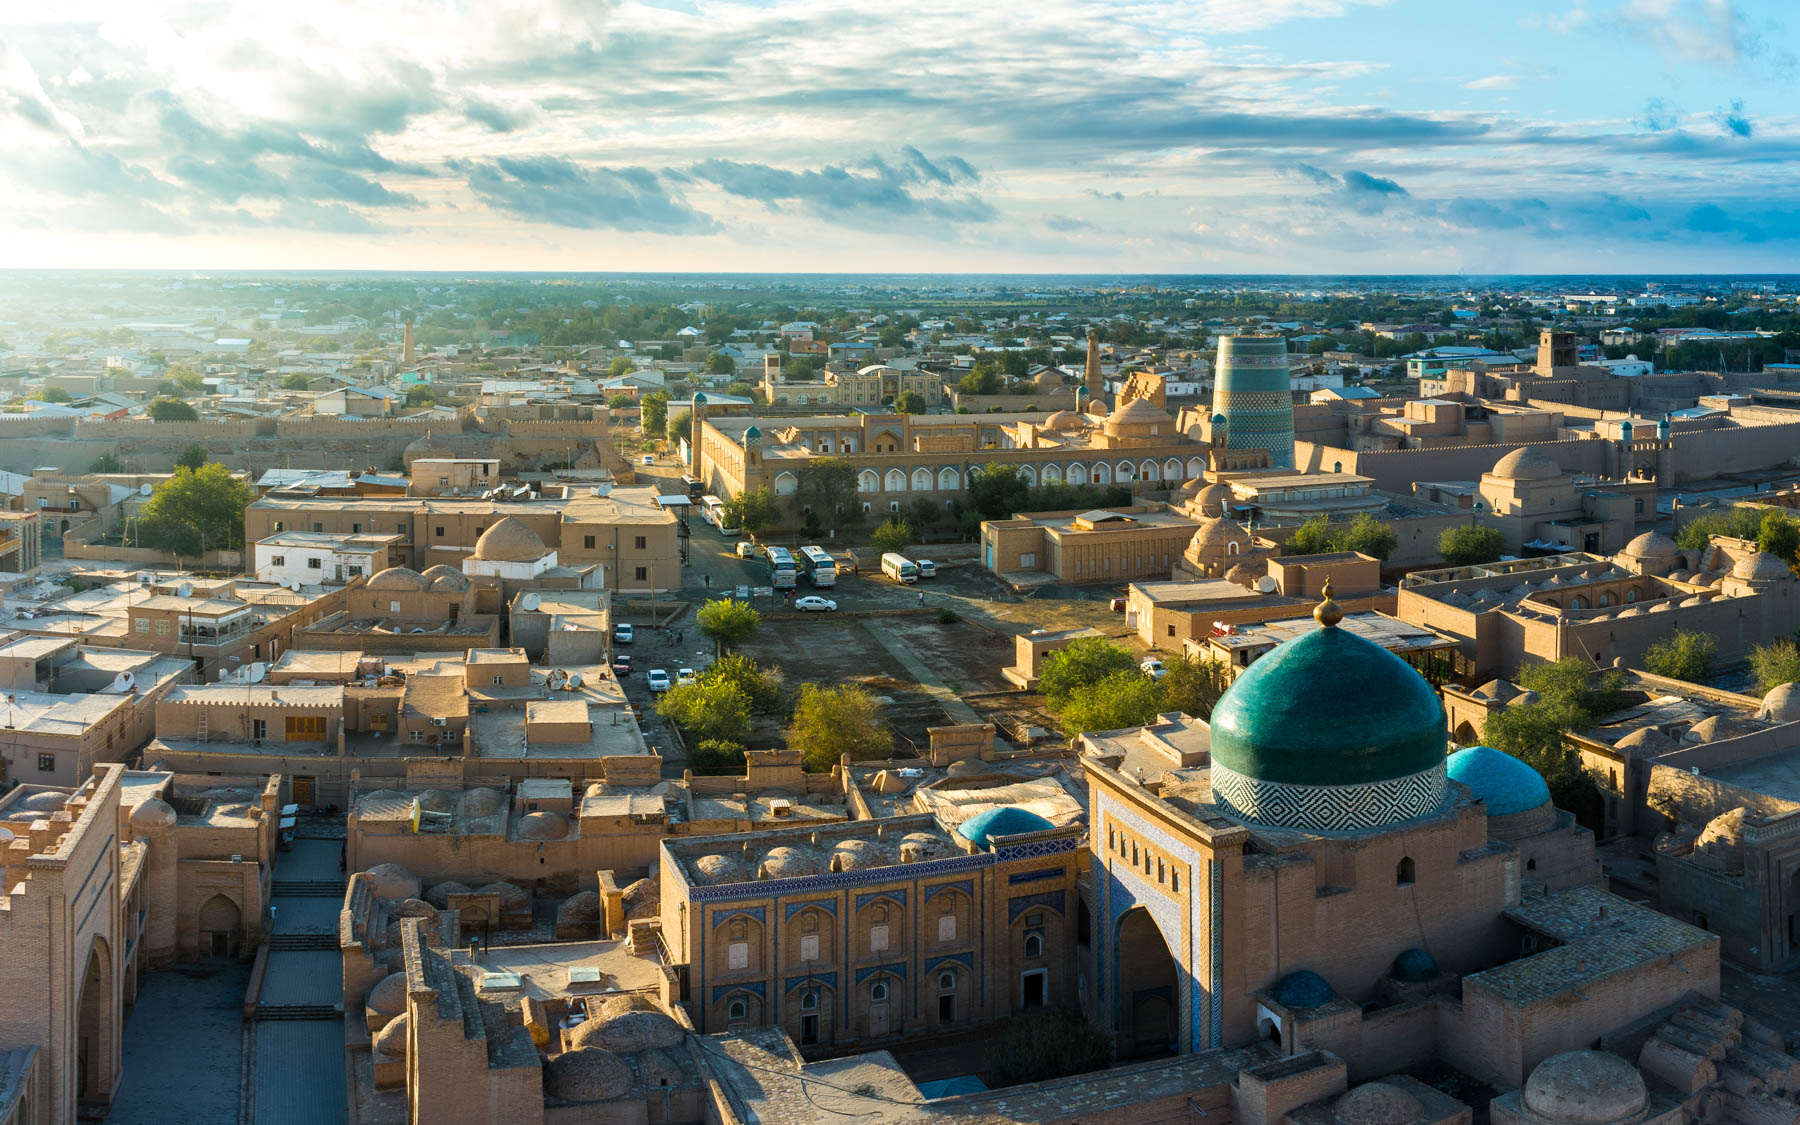 Khiva old town at sunset